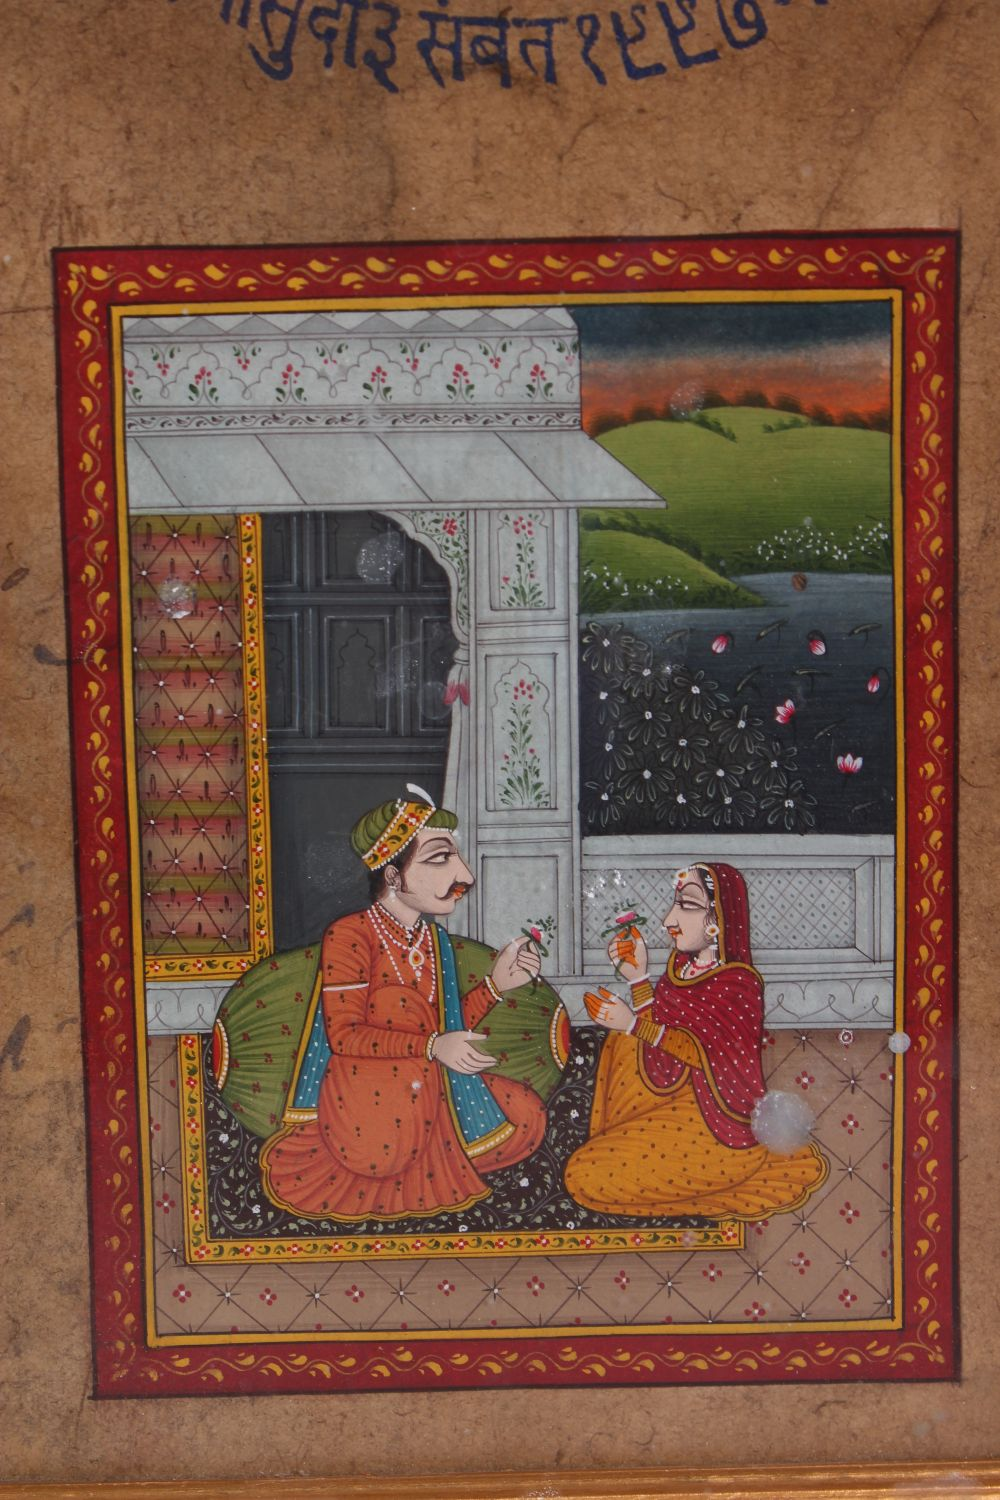 Lot 36 - A SET OF FOUR FRAMED 19TH CENTURY INDIAN HAND PAINTED MUGHAL ART, each painting framed and with an